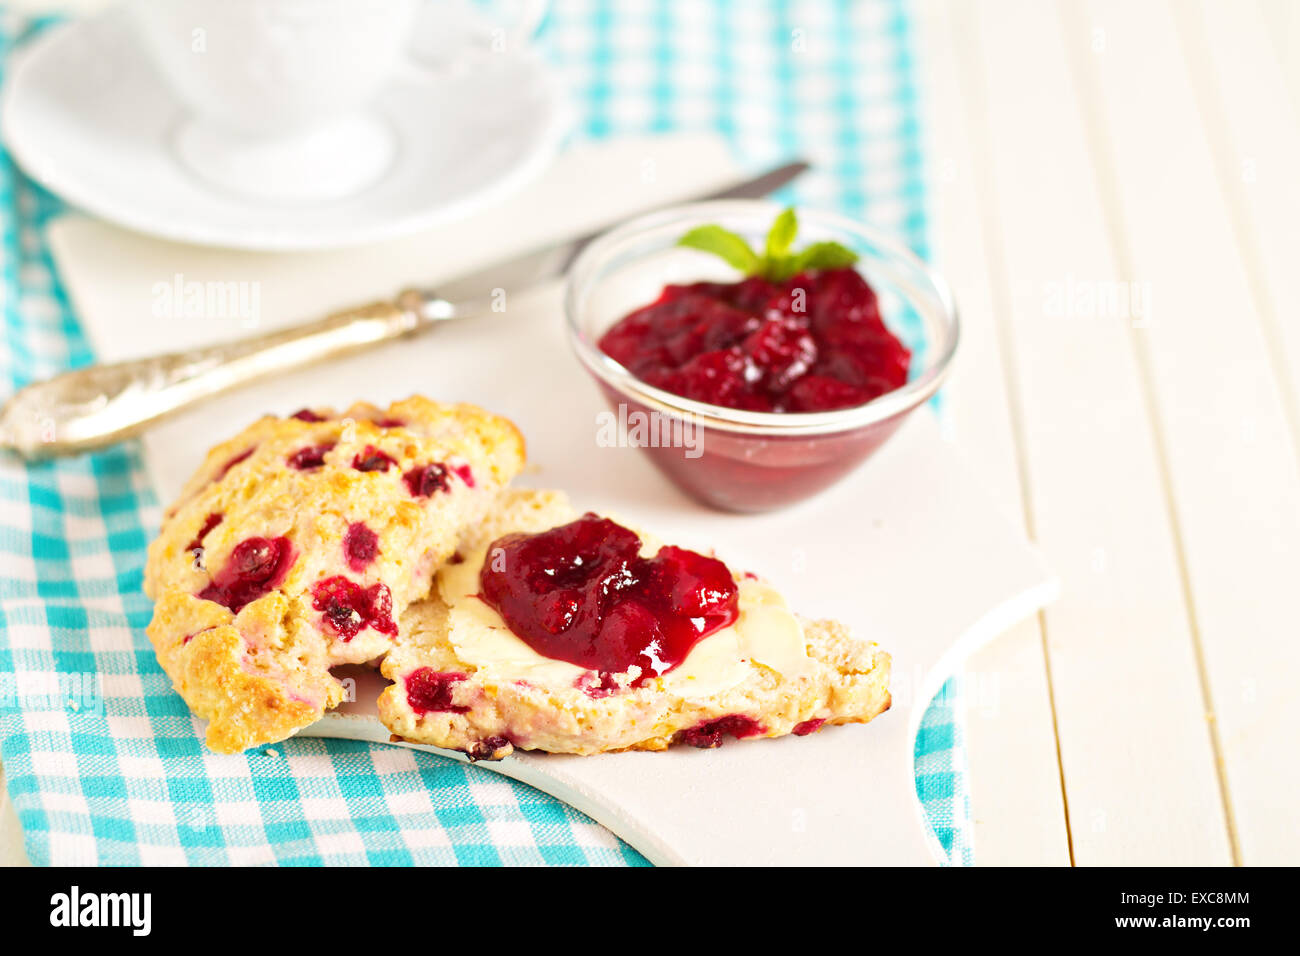 Scone with orange zest and berries with butter and jam - Stock Image